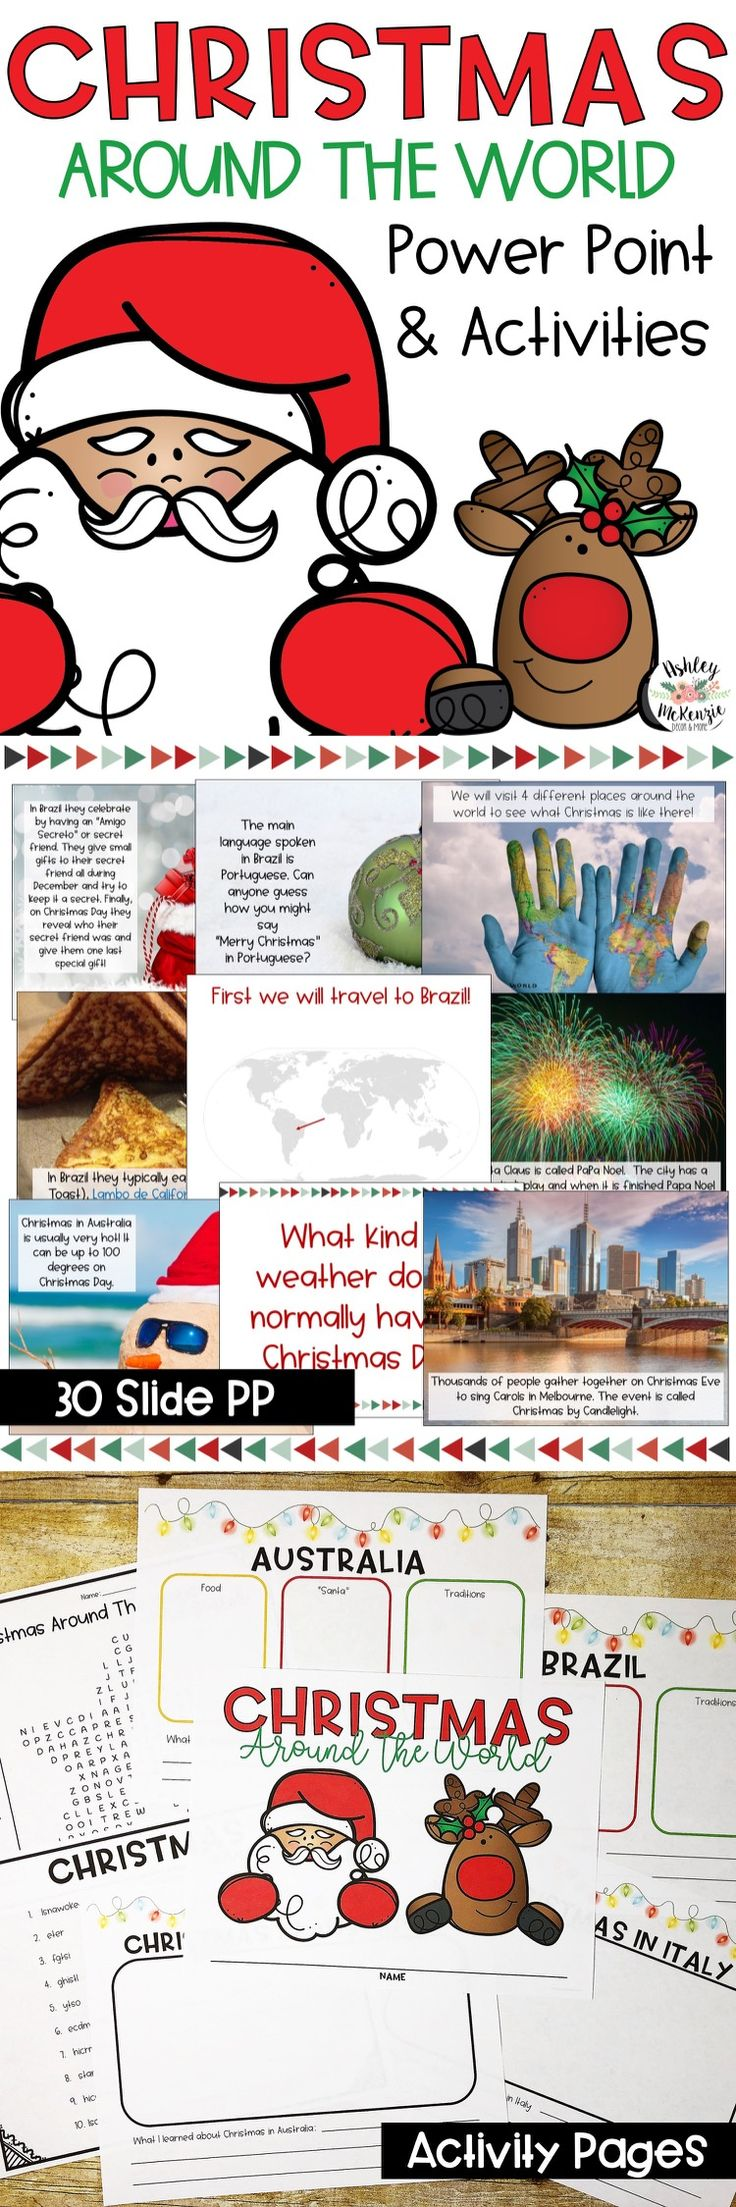 Teach your young learners about Christmas around the world! Features Italy, Brazil, Australia, and Africa!